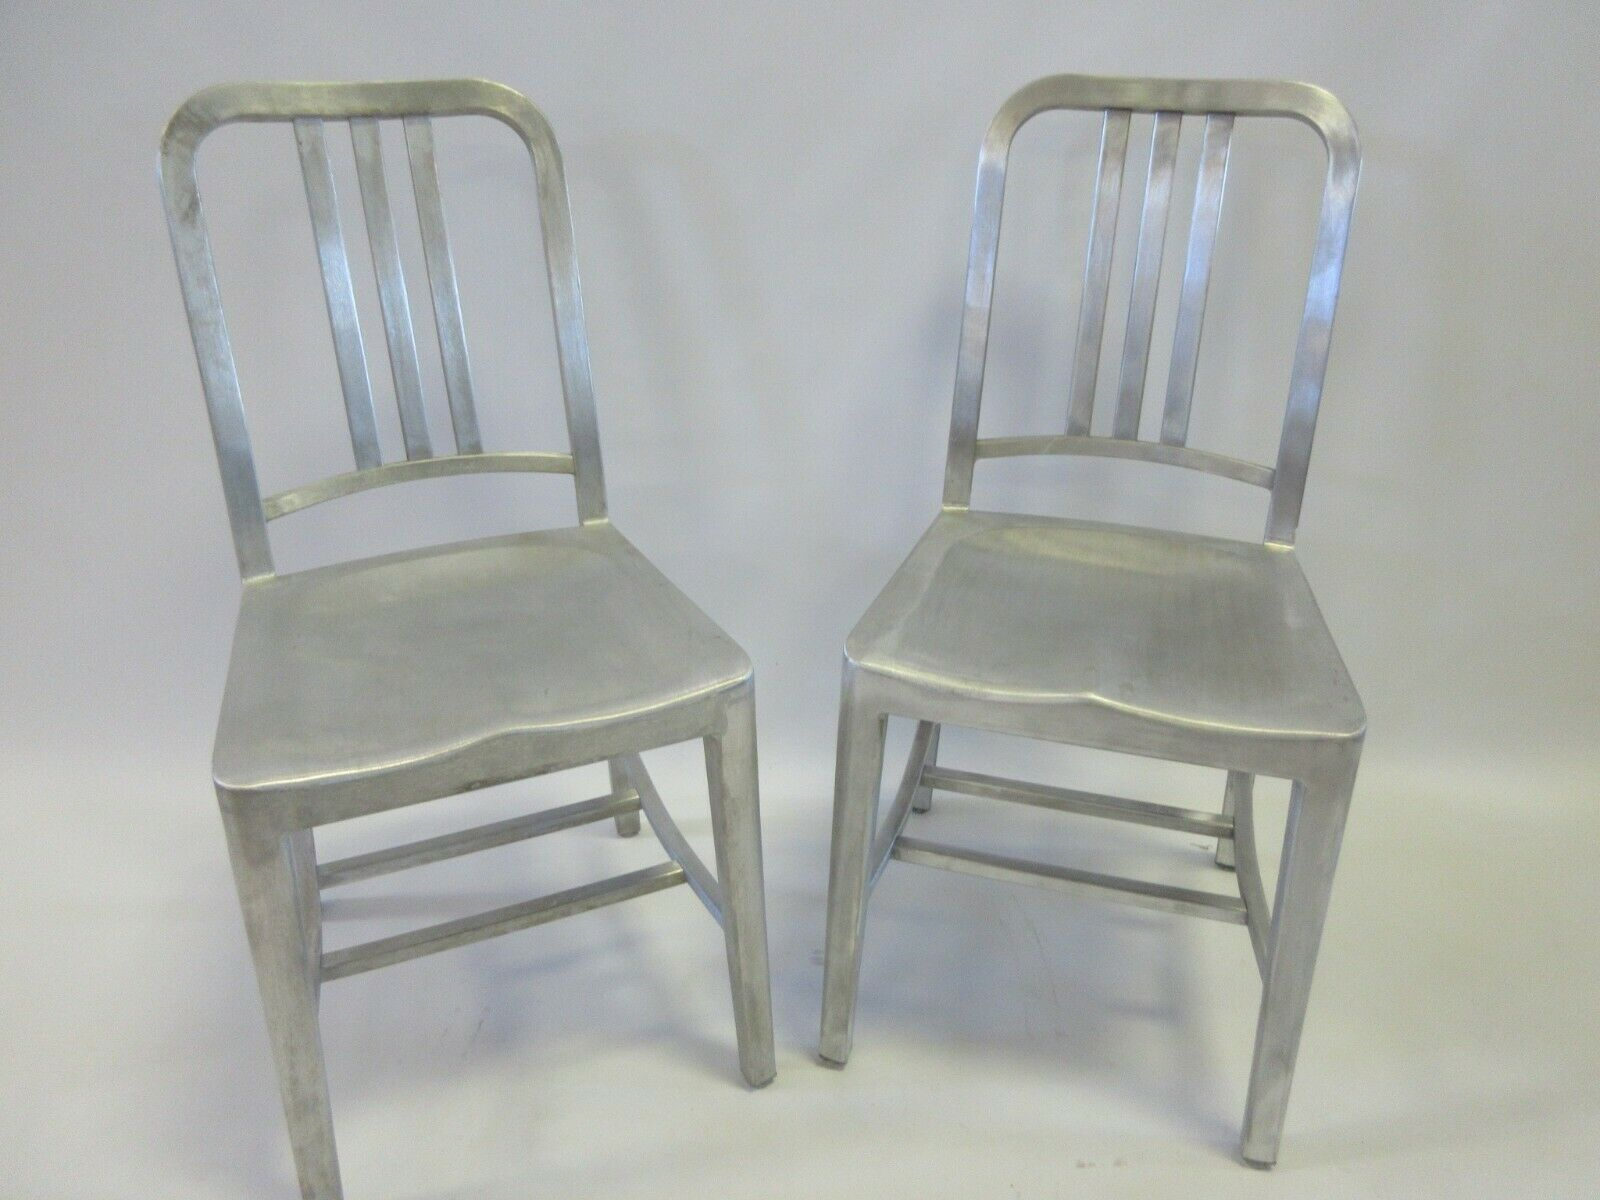 Photo Two (2) Genuine EMECO 1006 Navy Chairs in Brushed Aluminum